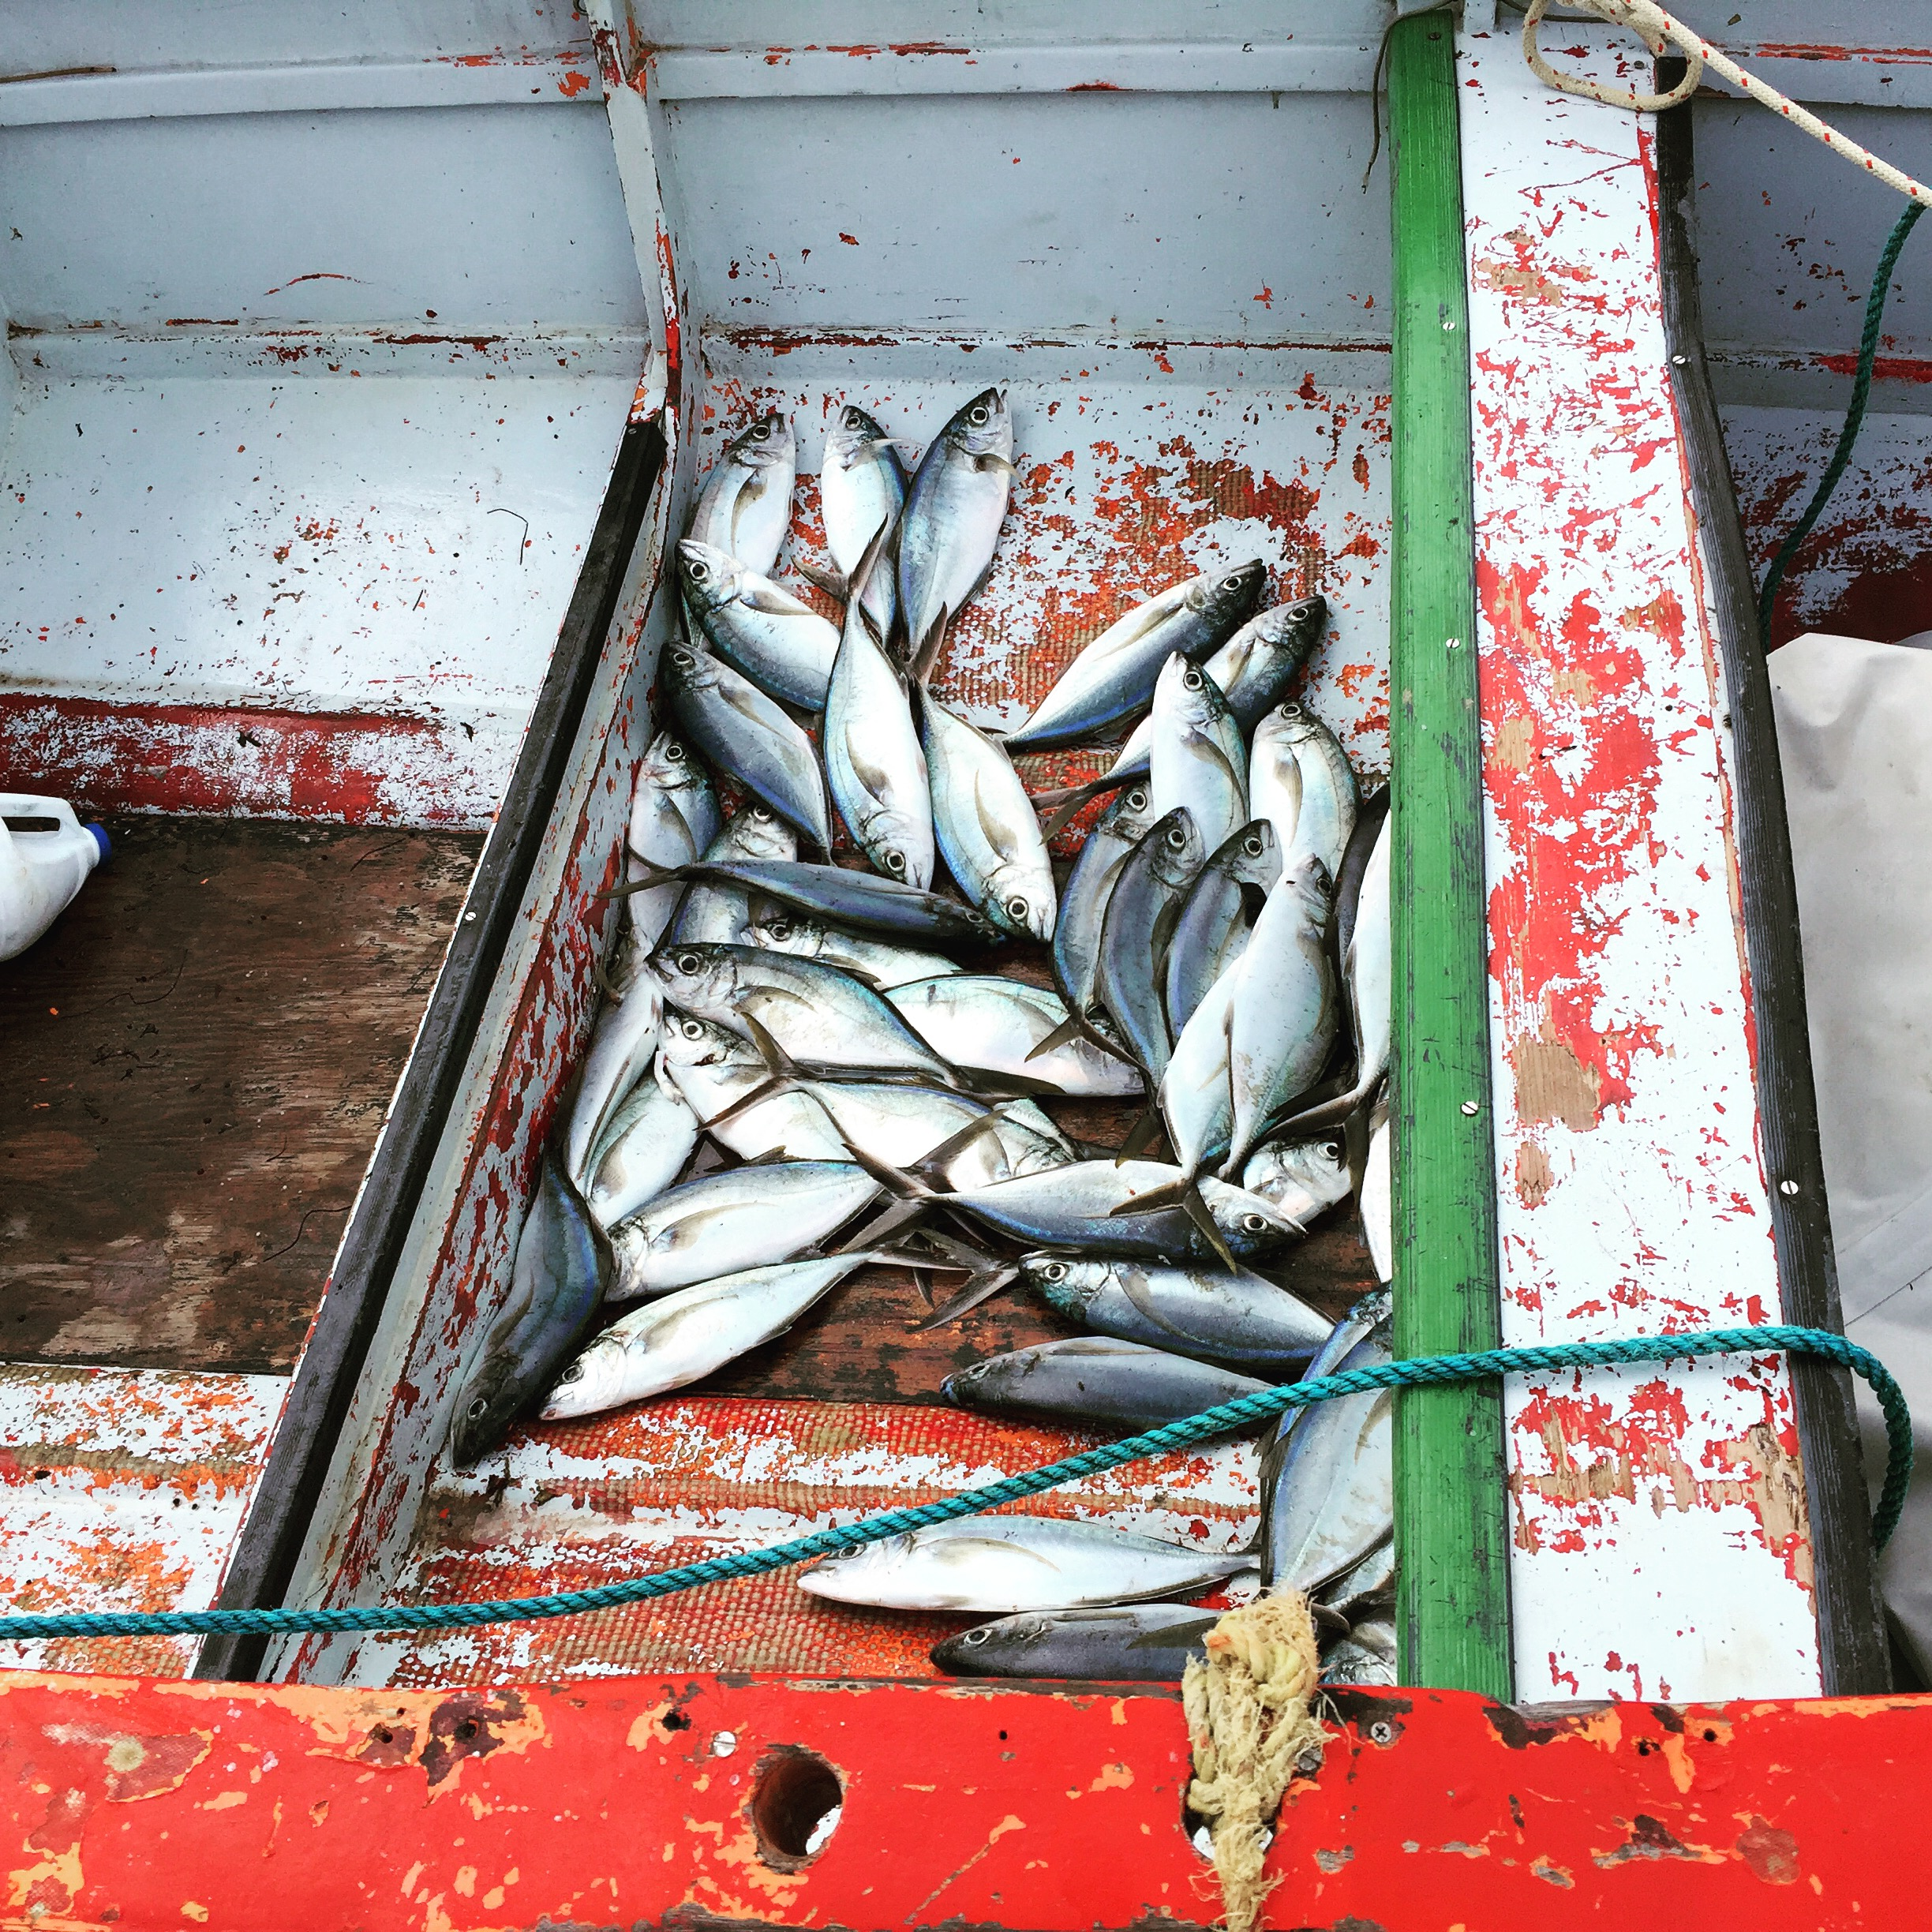 Catch of the Day, Bequia SVG.JPG